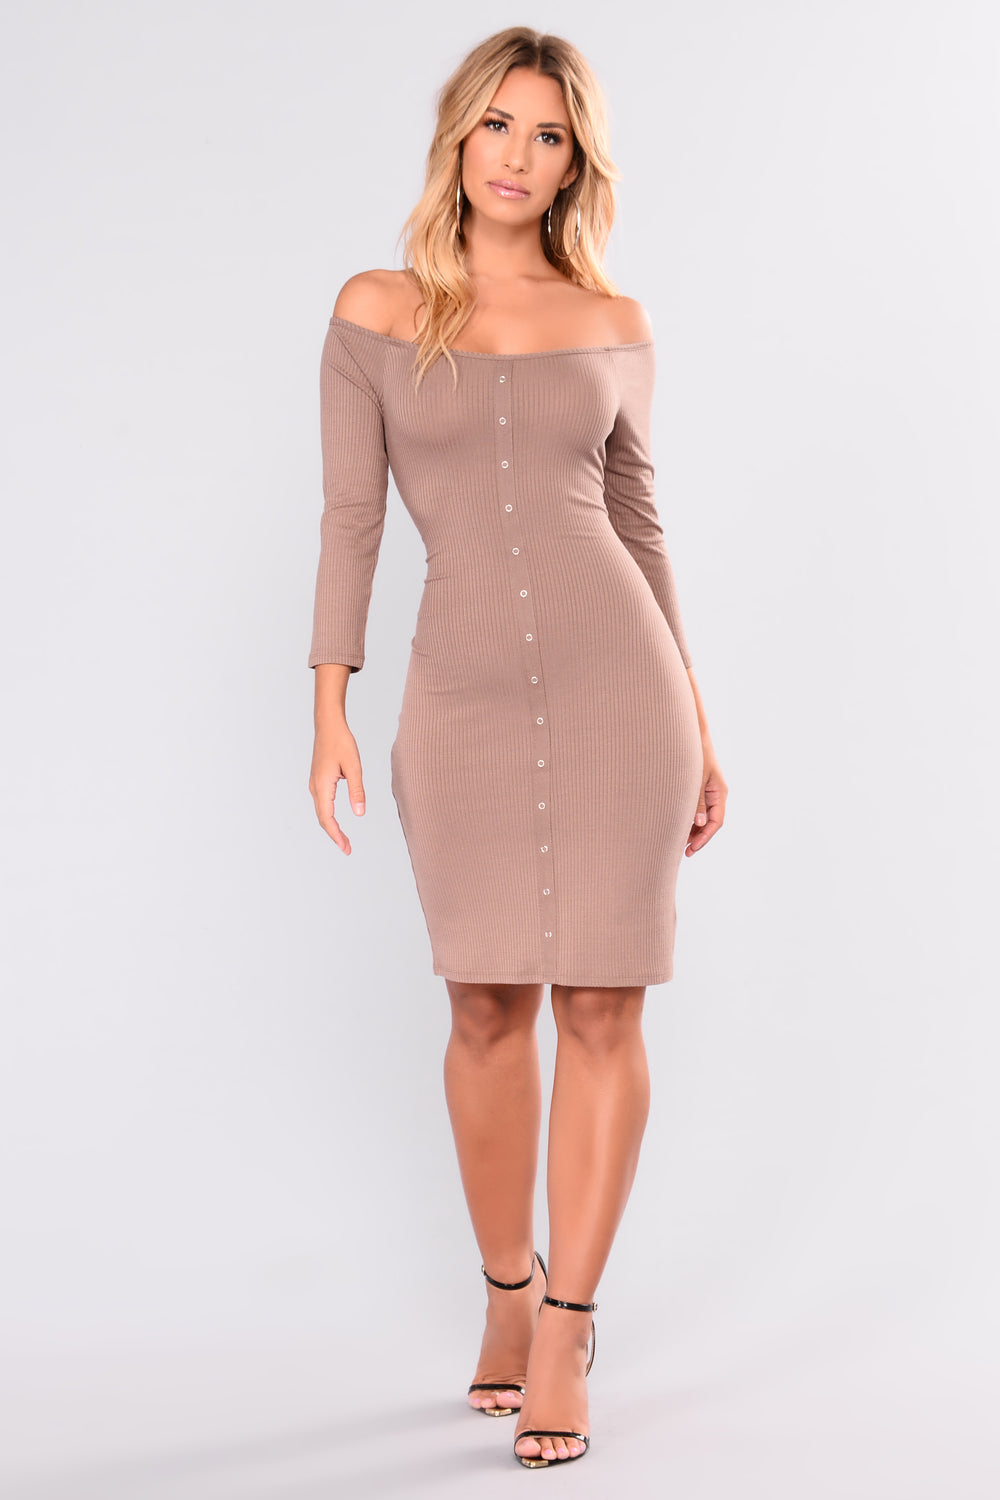 Young Love Ribbed Dress - Mocha